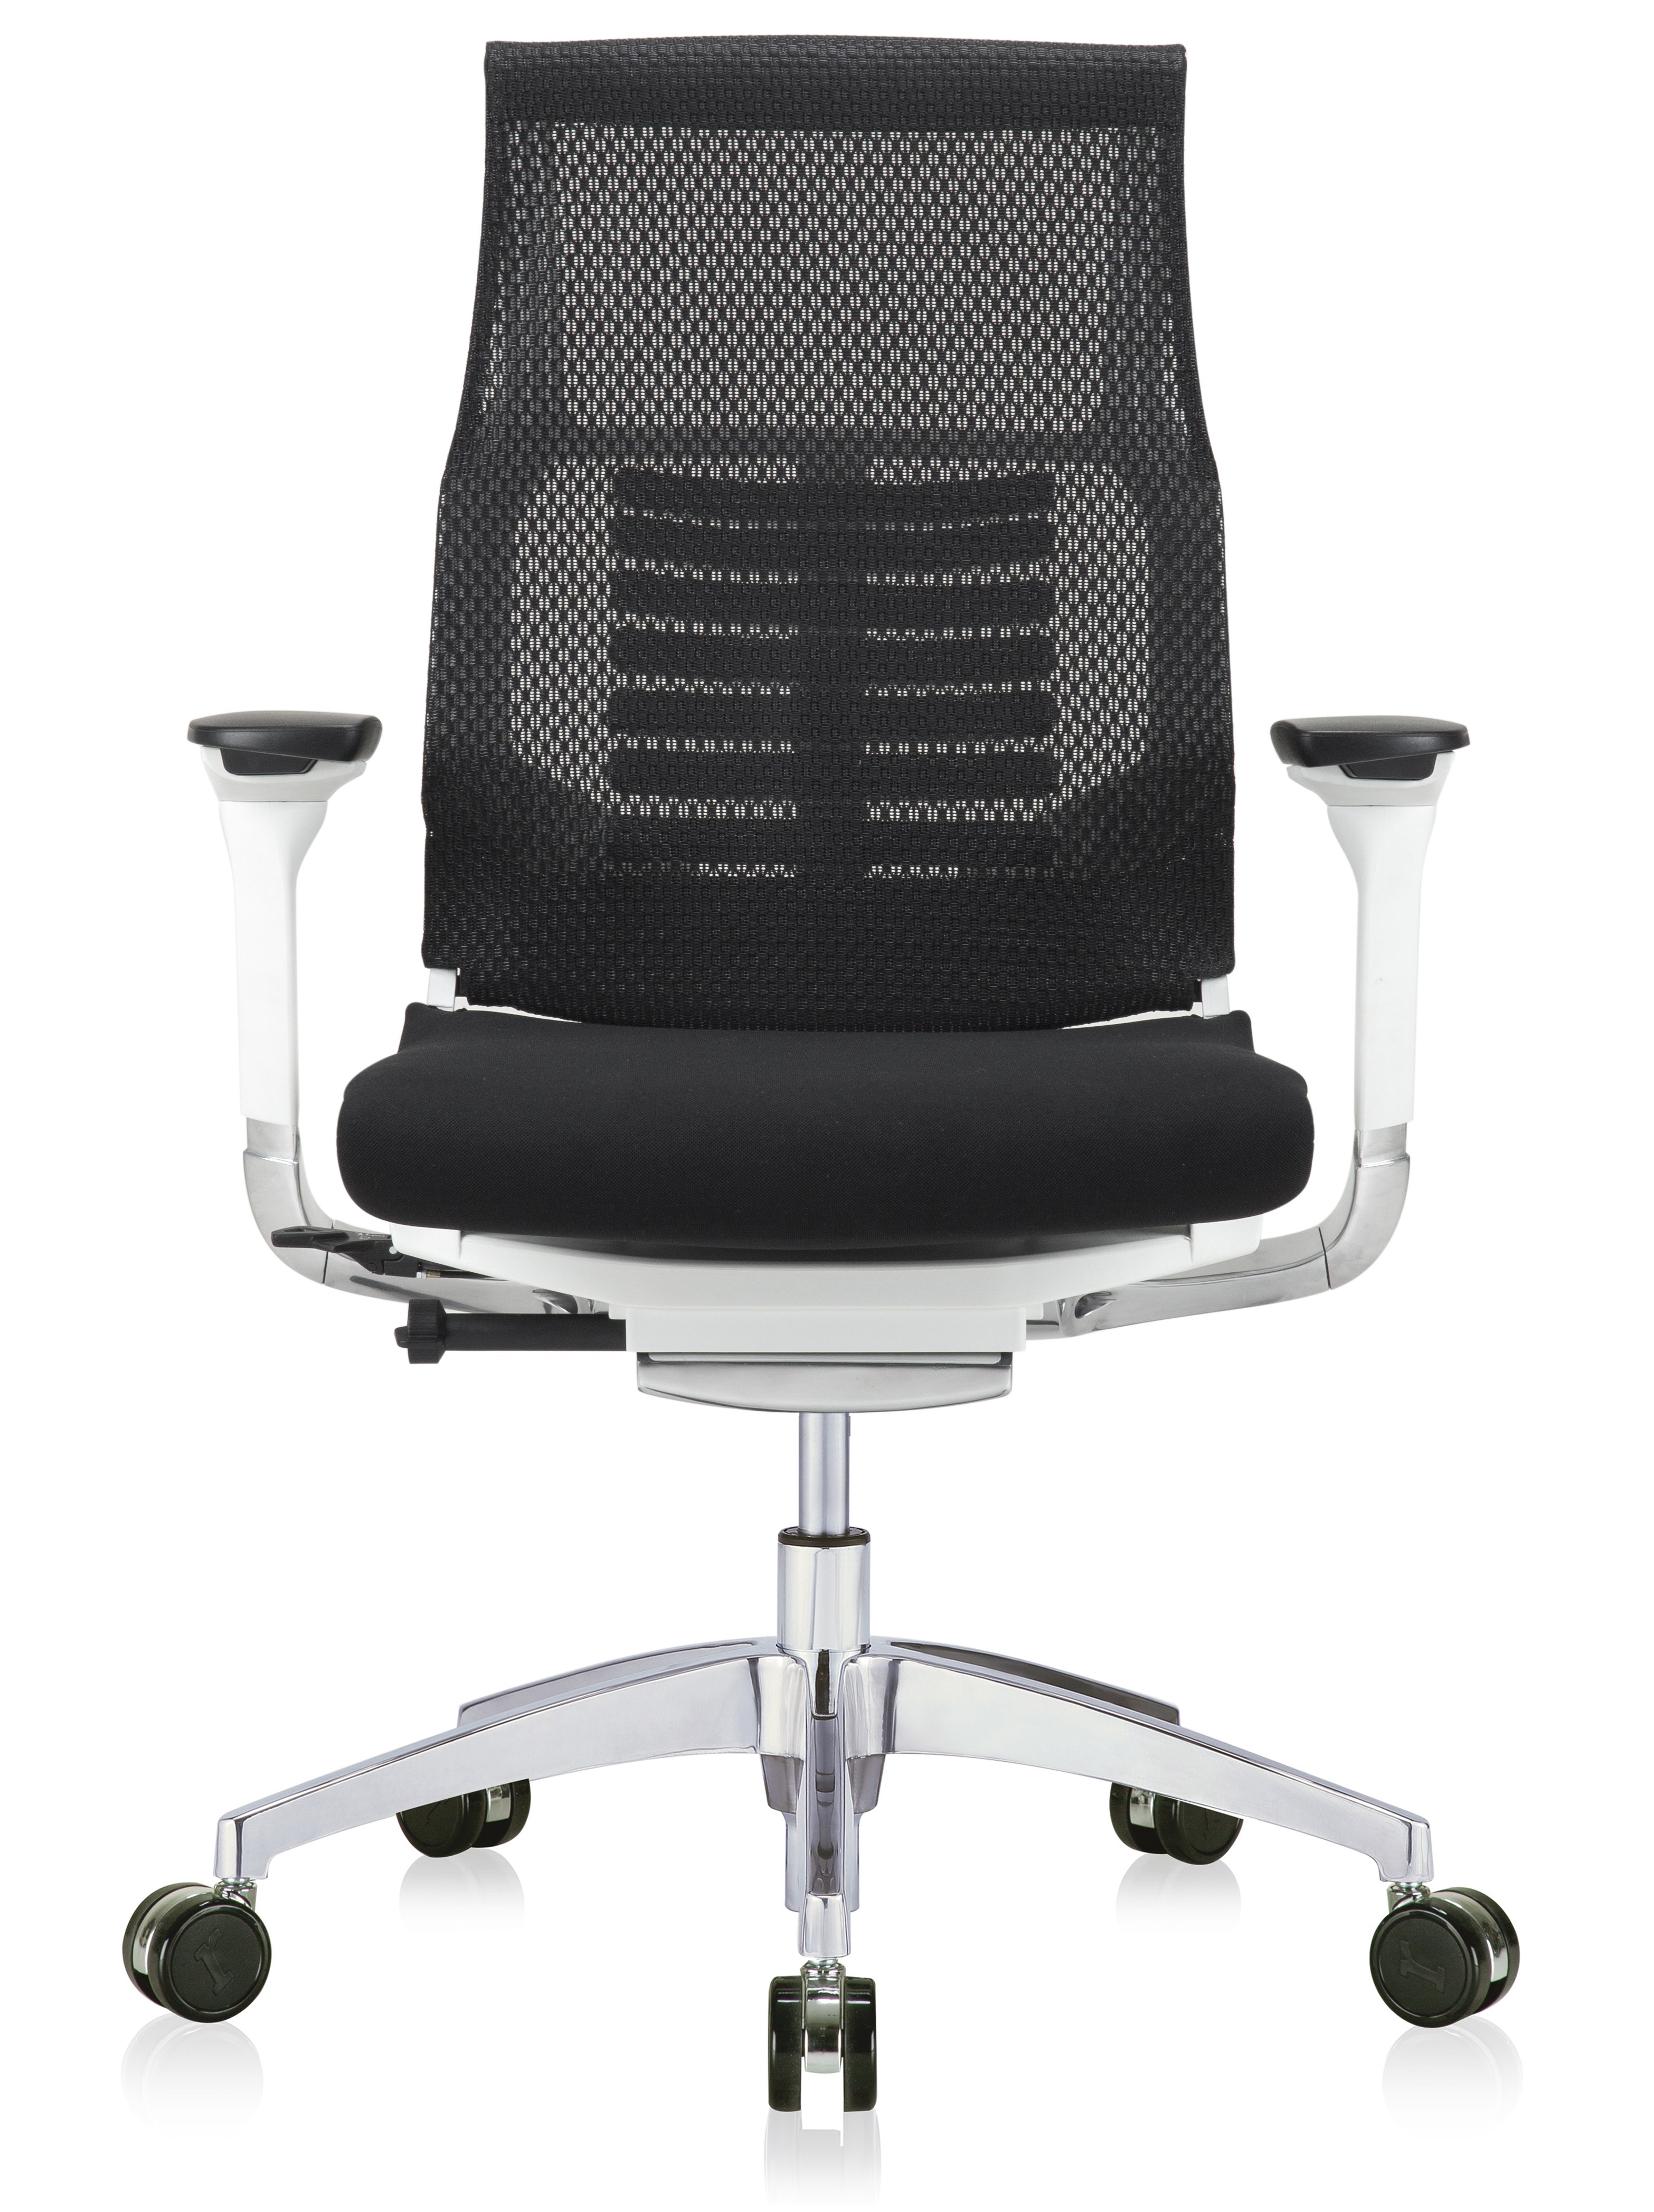 powerfit chair front